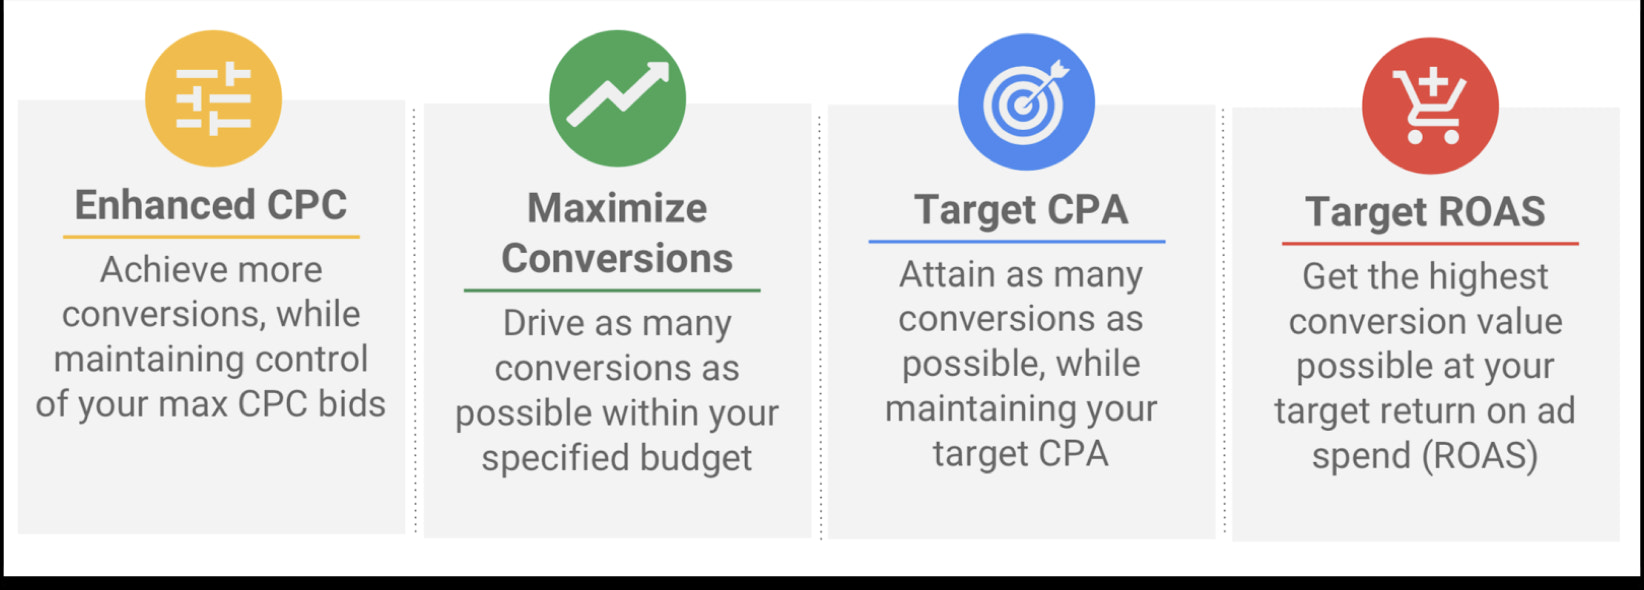 Four of Google Smart Shopping bid options from left to right: Enhanced CPC, Maximize Conversions, Target CPA, and Target ROAS.